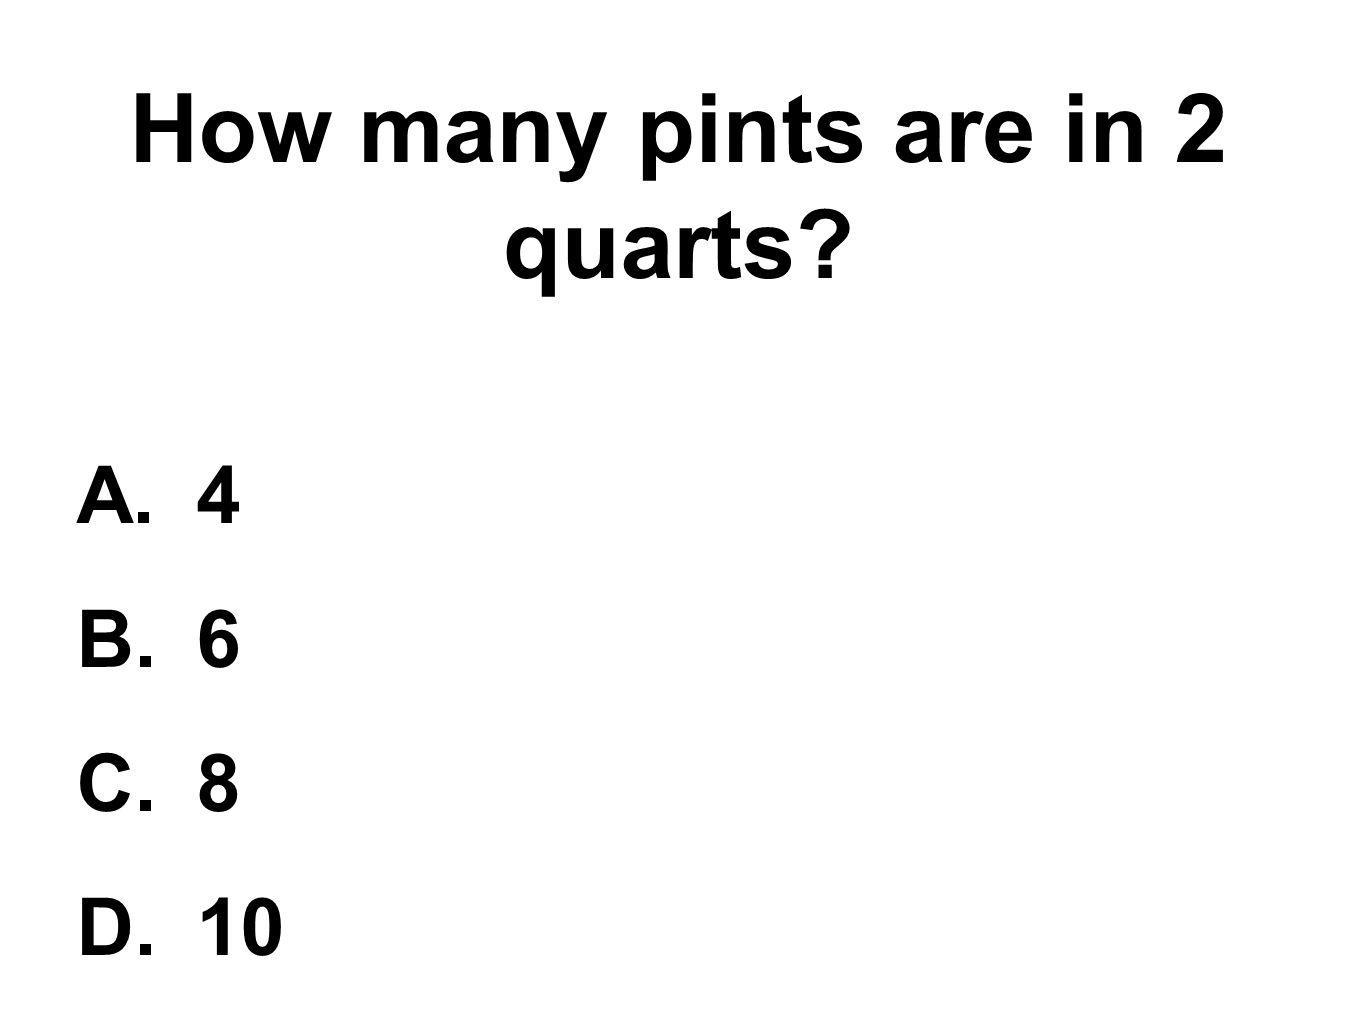 How many pints are in 2 quarts? A.4 B.6 C.8 D.10